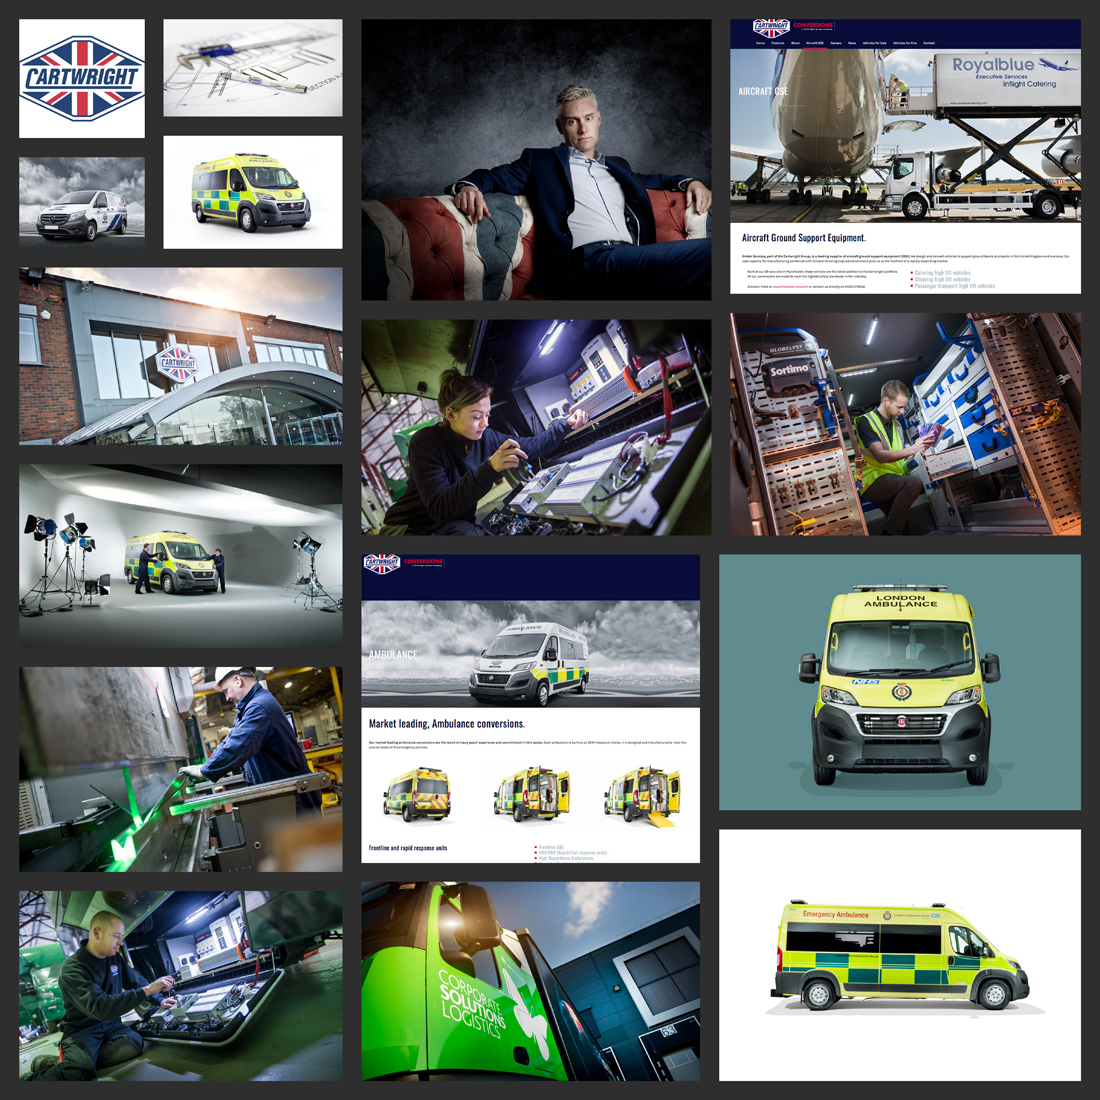 truck photographer, studio truck photography, professional truck photography, commercial photography, tim wallace